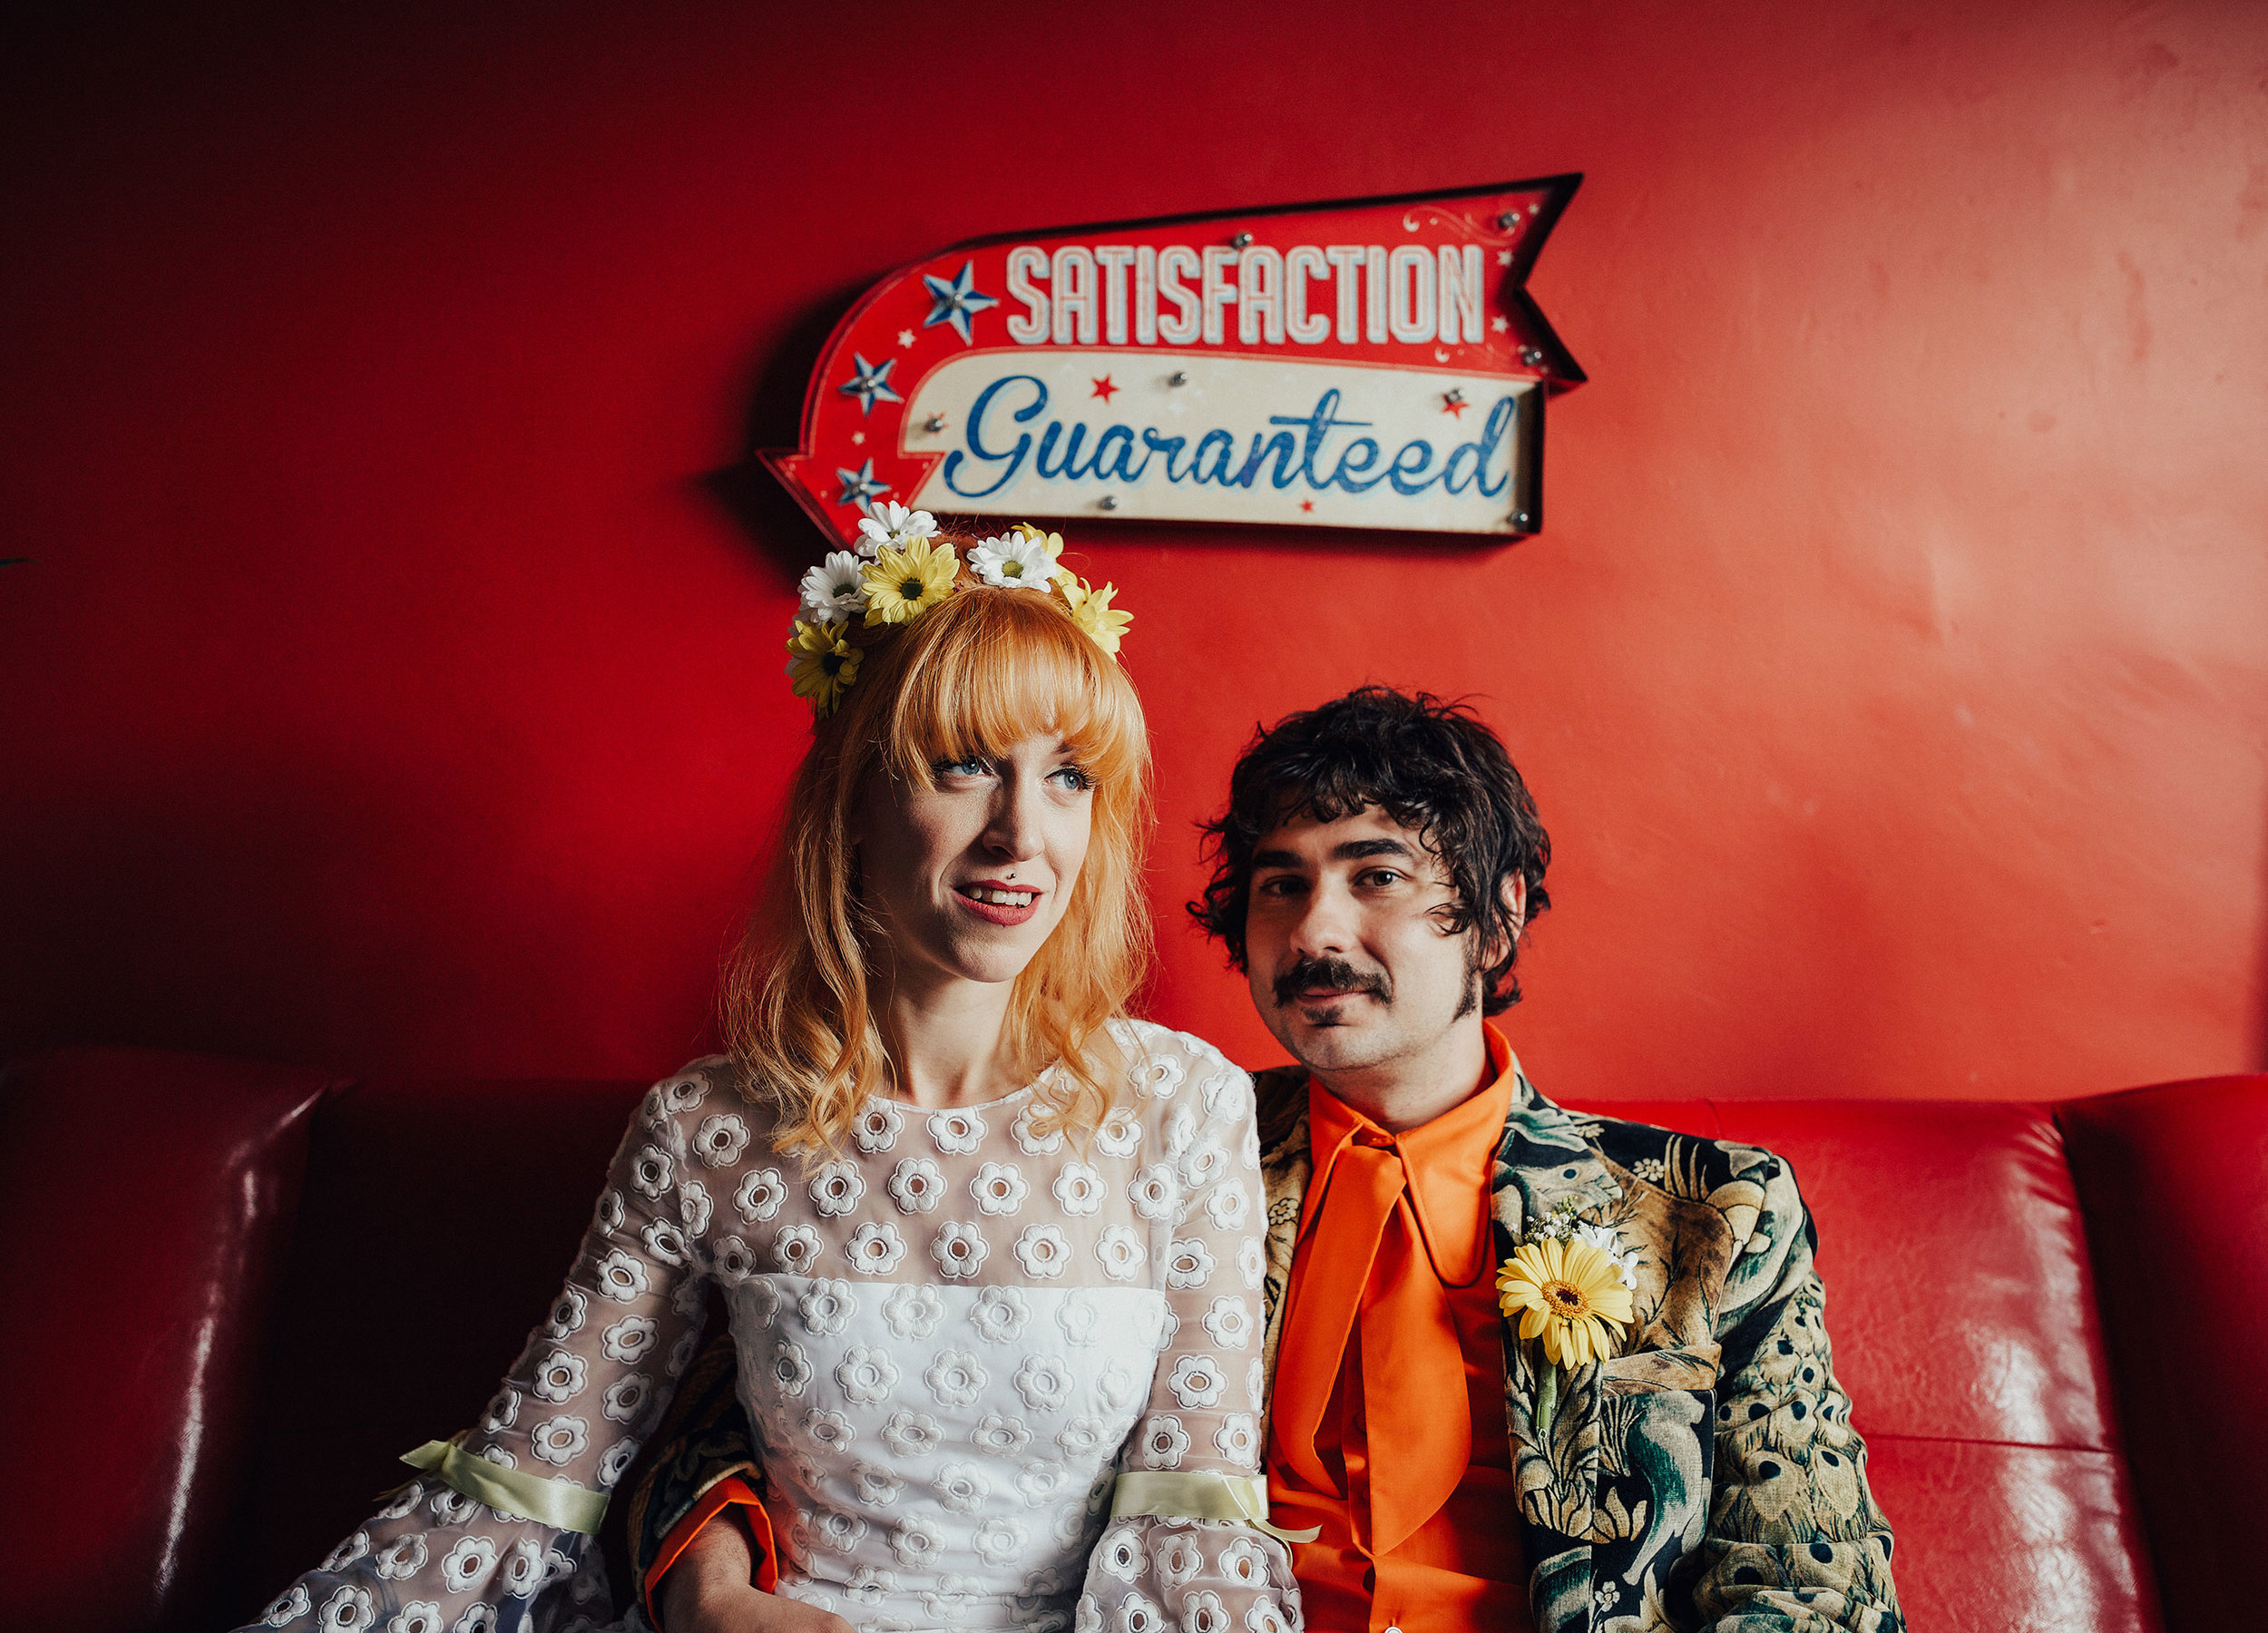 VINTAGE_BOHO_WEDDING_PHOTOGRAPHY_LEEDS_PJ_PHILLIPS_PHOTOGRAPHY.jpg